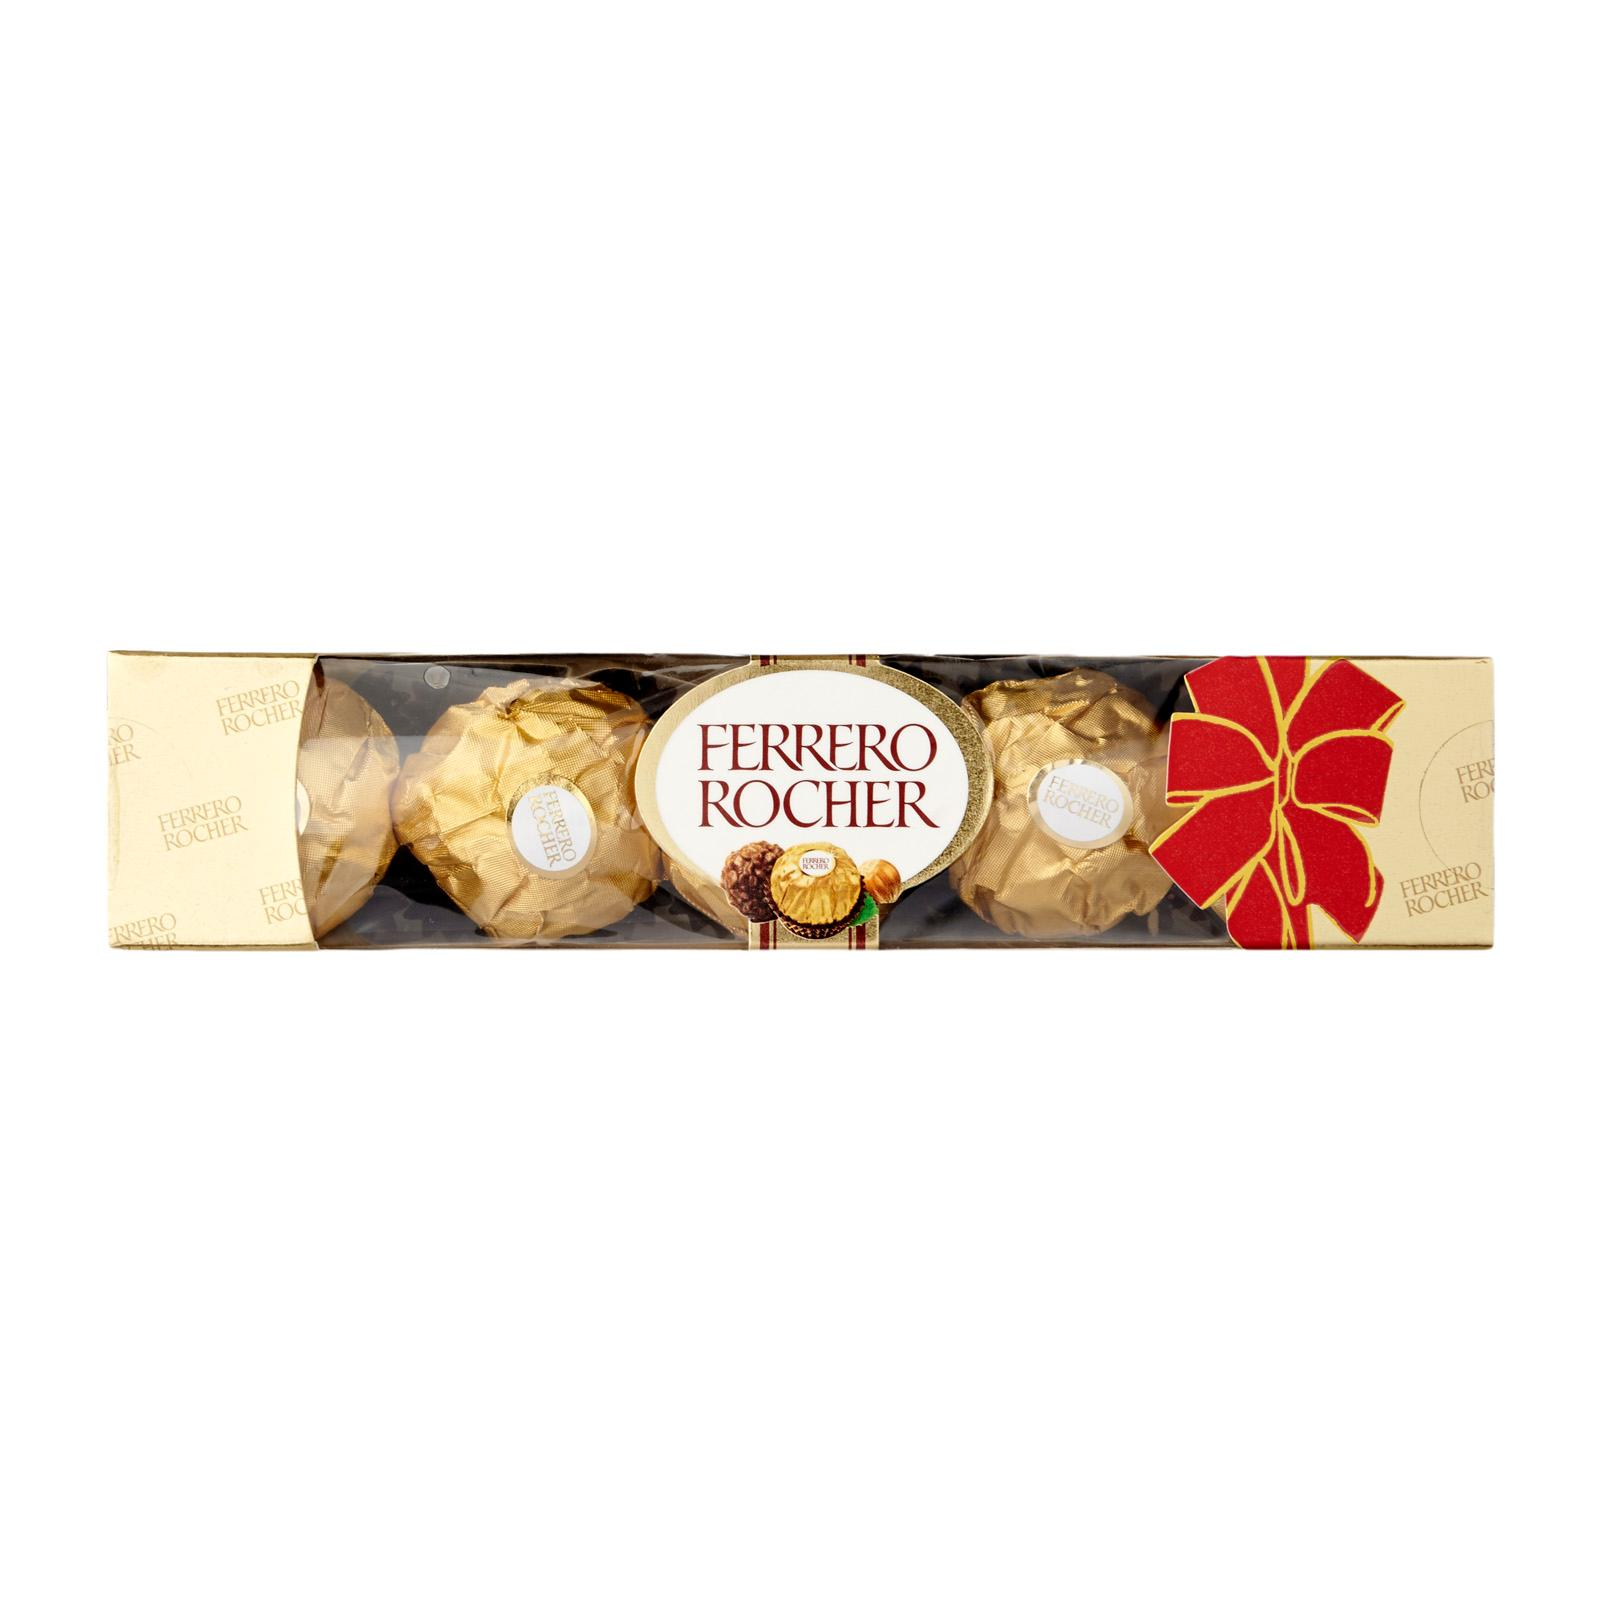 FERRERO Rocher Chocolate Hazelnut T-5 (62.5g)